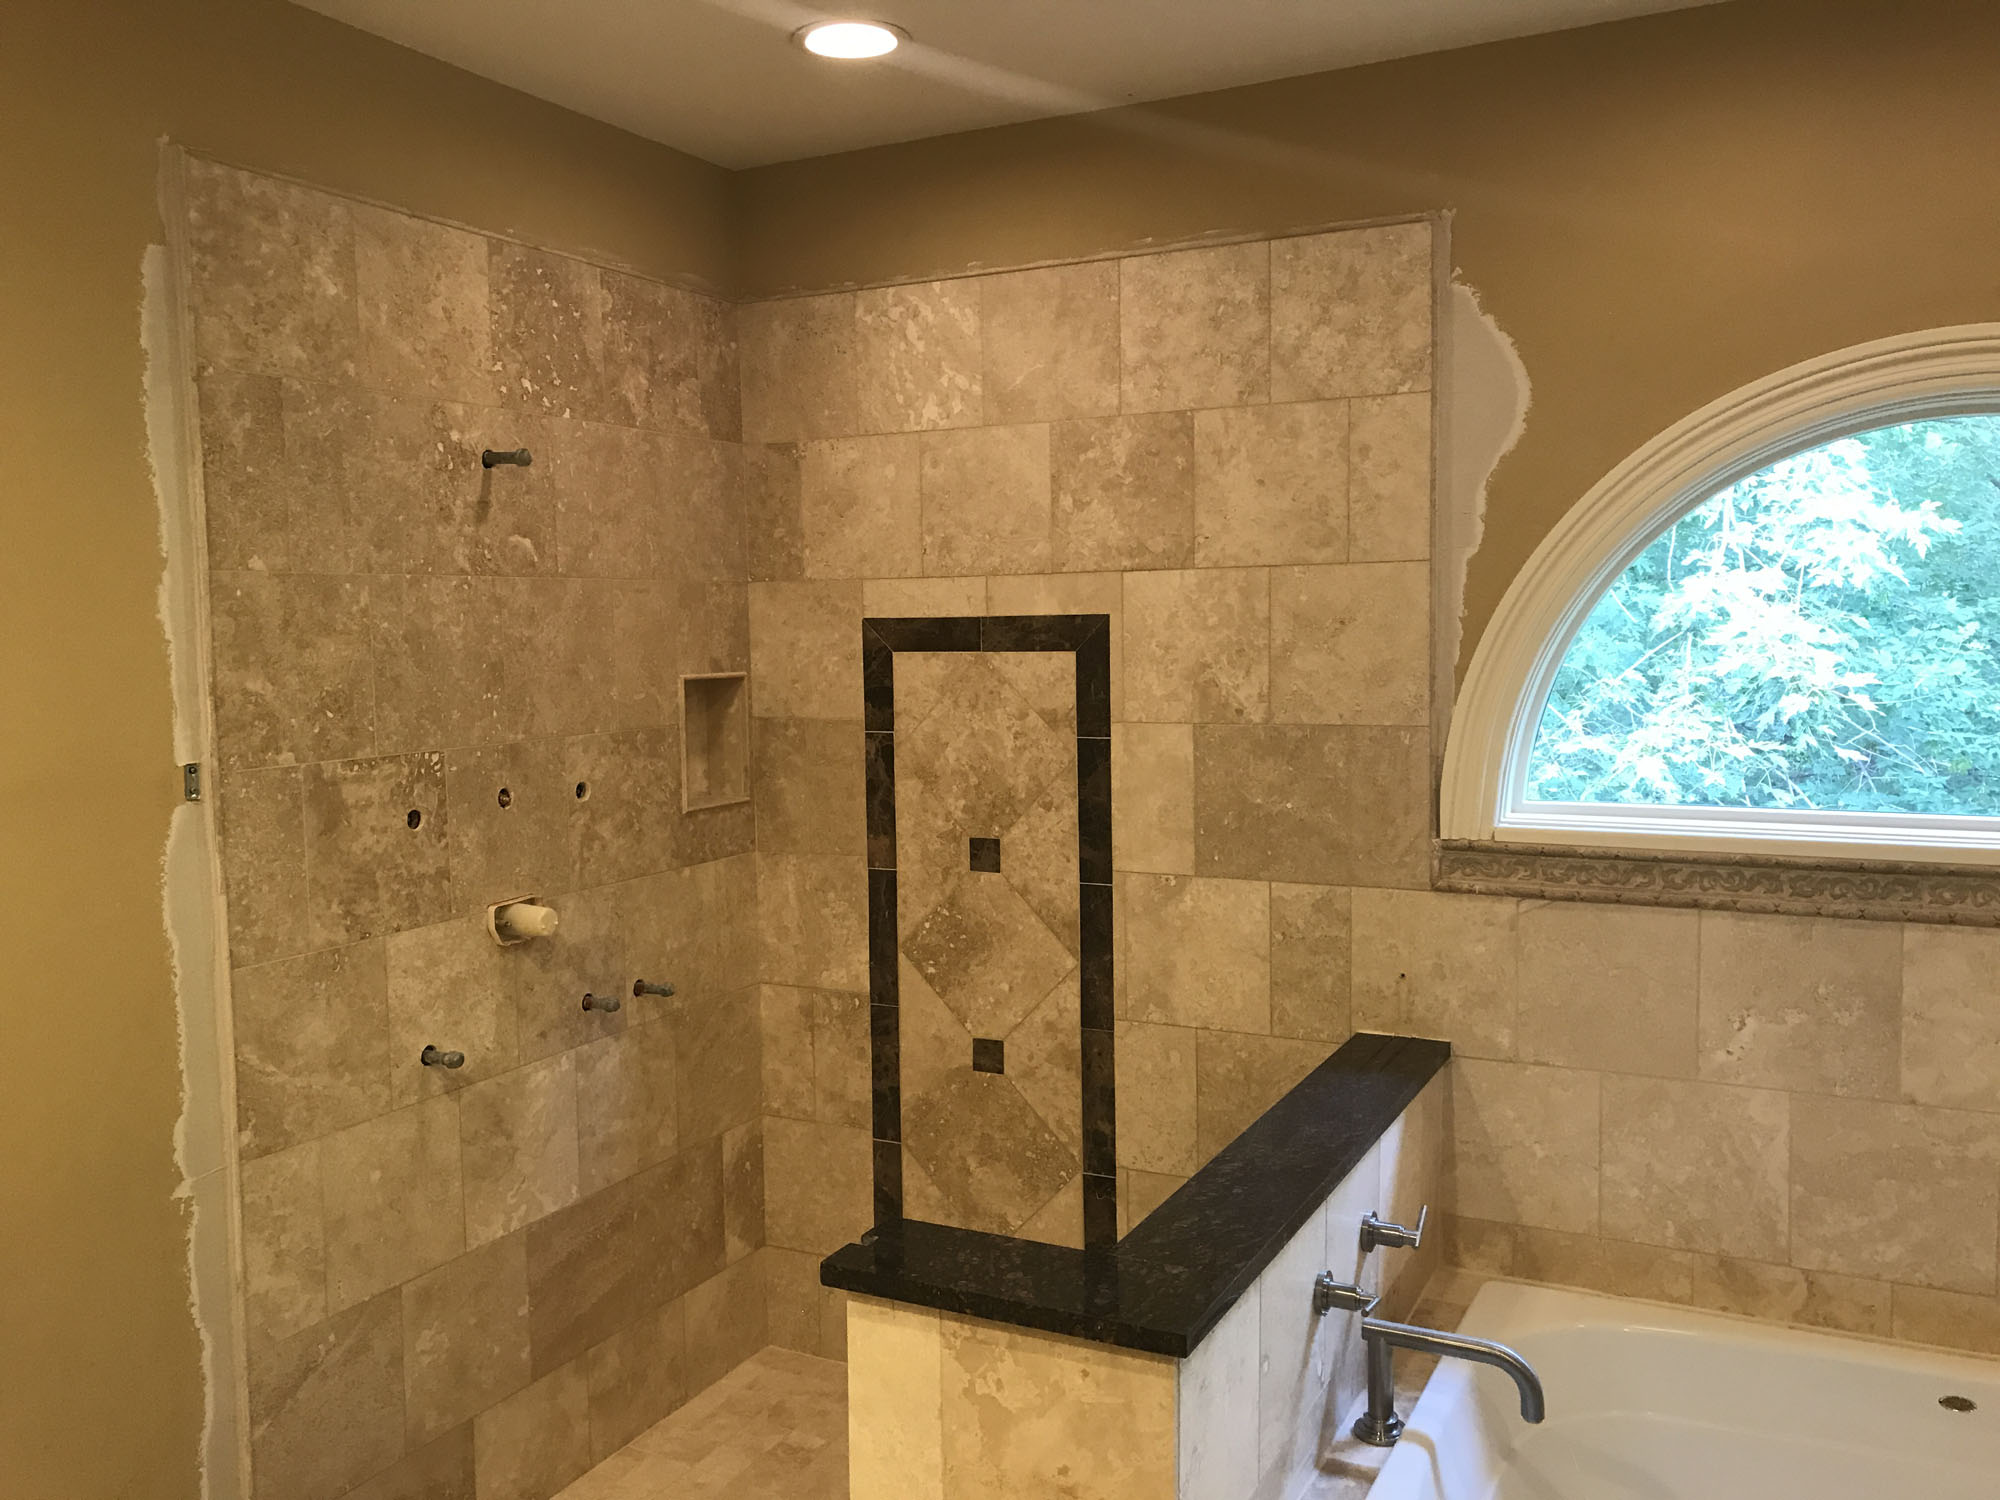 Shower remodeling schaumburg sunny construction for Bathroom remodel schaumburg il